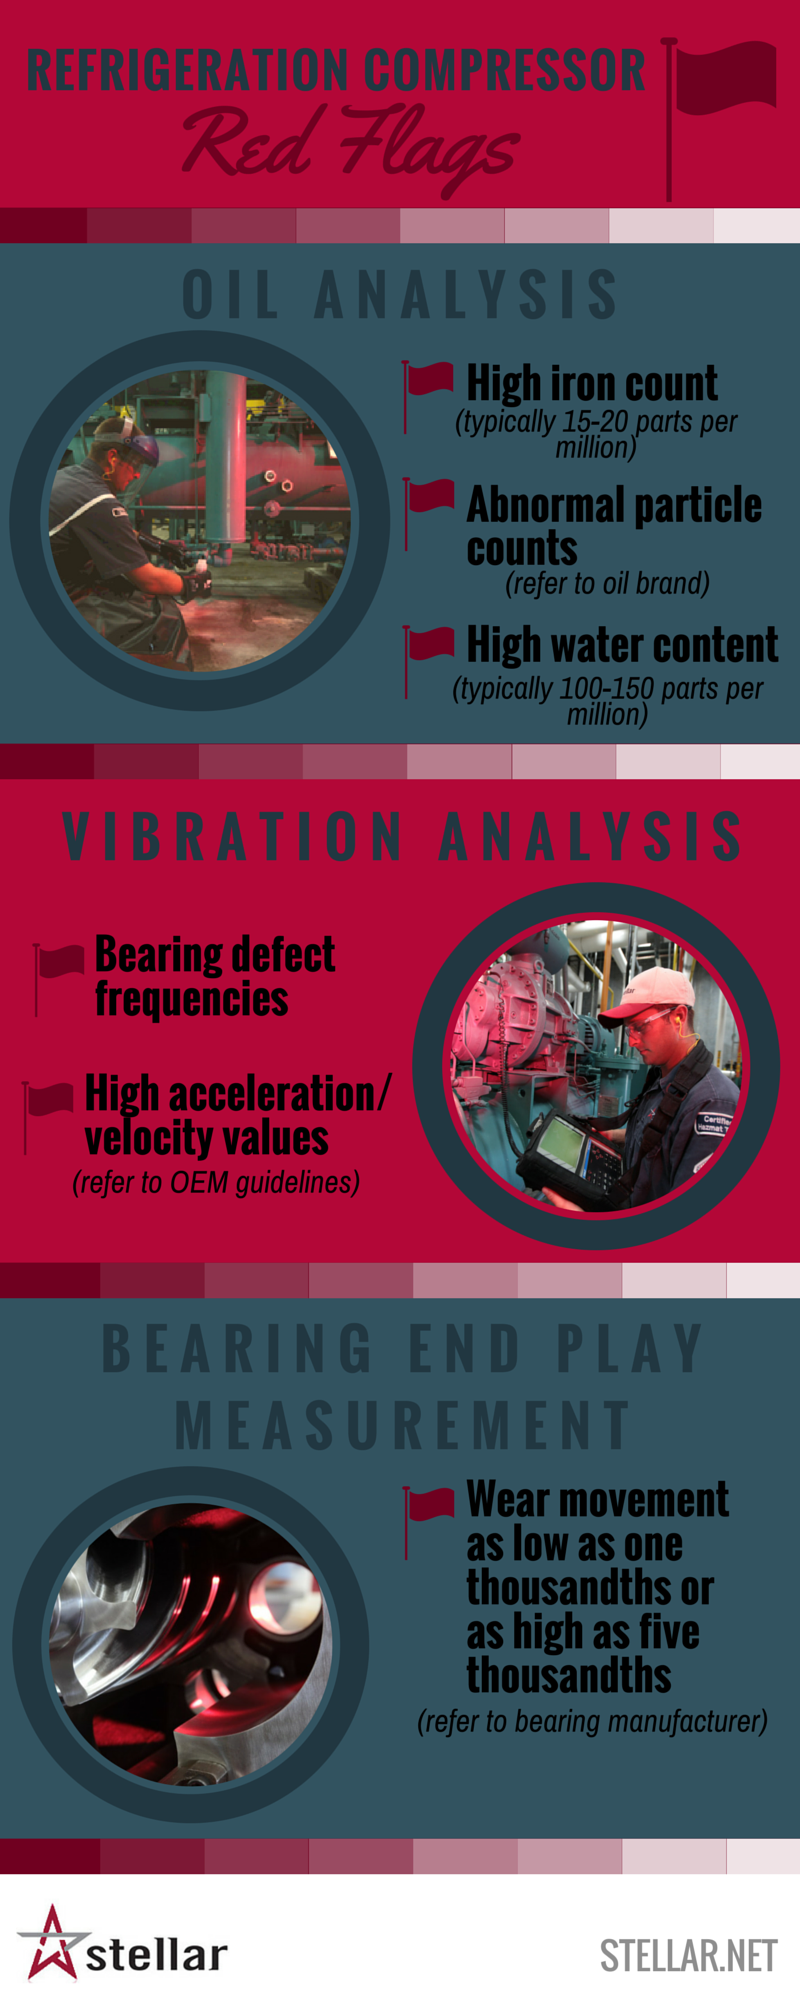 Infographic Refrigeration Compressor Red Flags